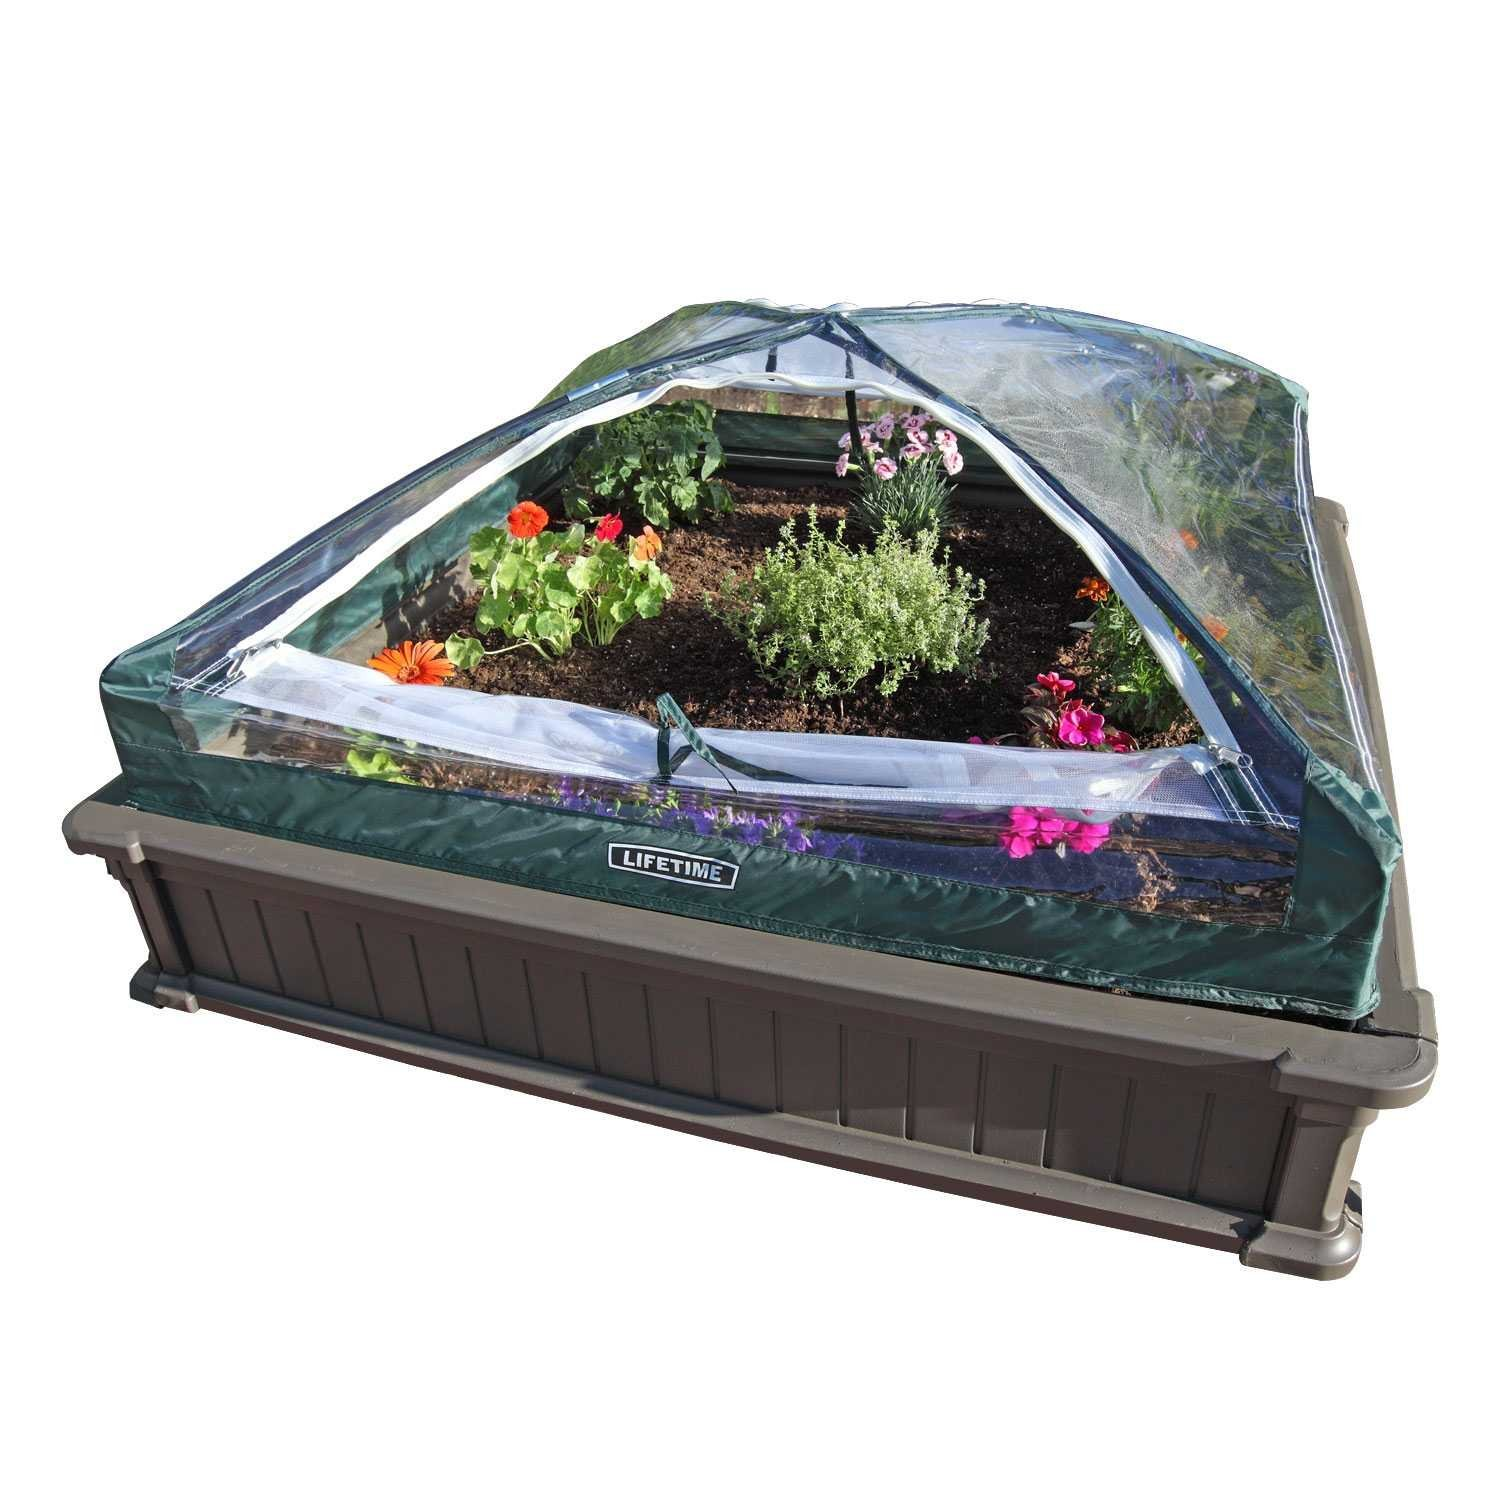 Amazon.com : Lifetime 60053 Raised Garde Bed Kit, 2 Beds And 1 Early Start  Vinyl Enclosure : Greenhouse Cold Frames : Garden U0026 Outdoor